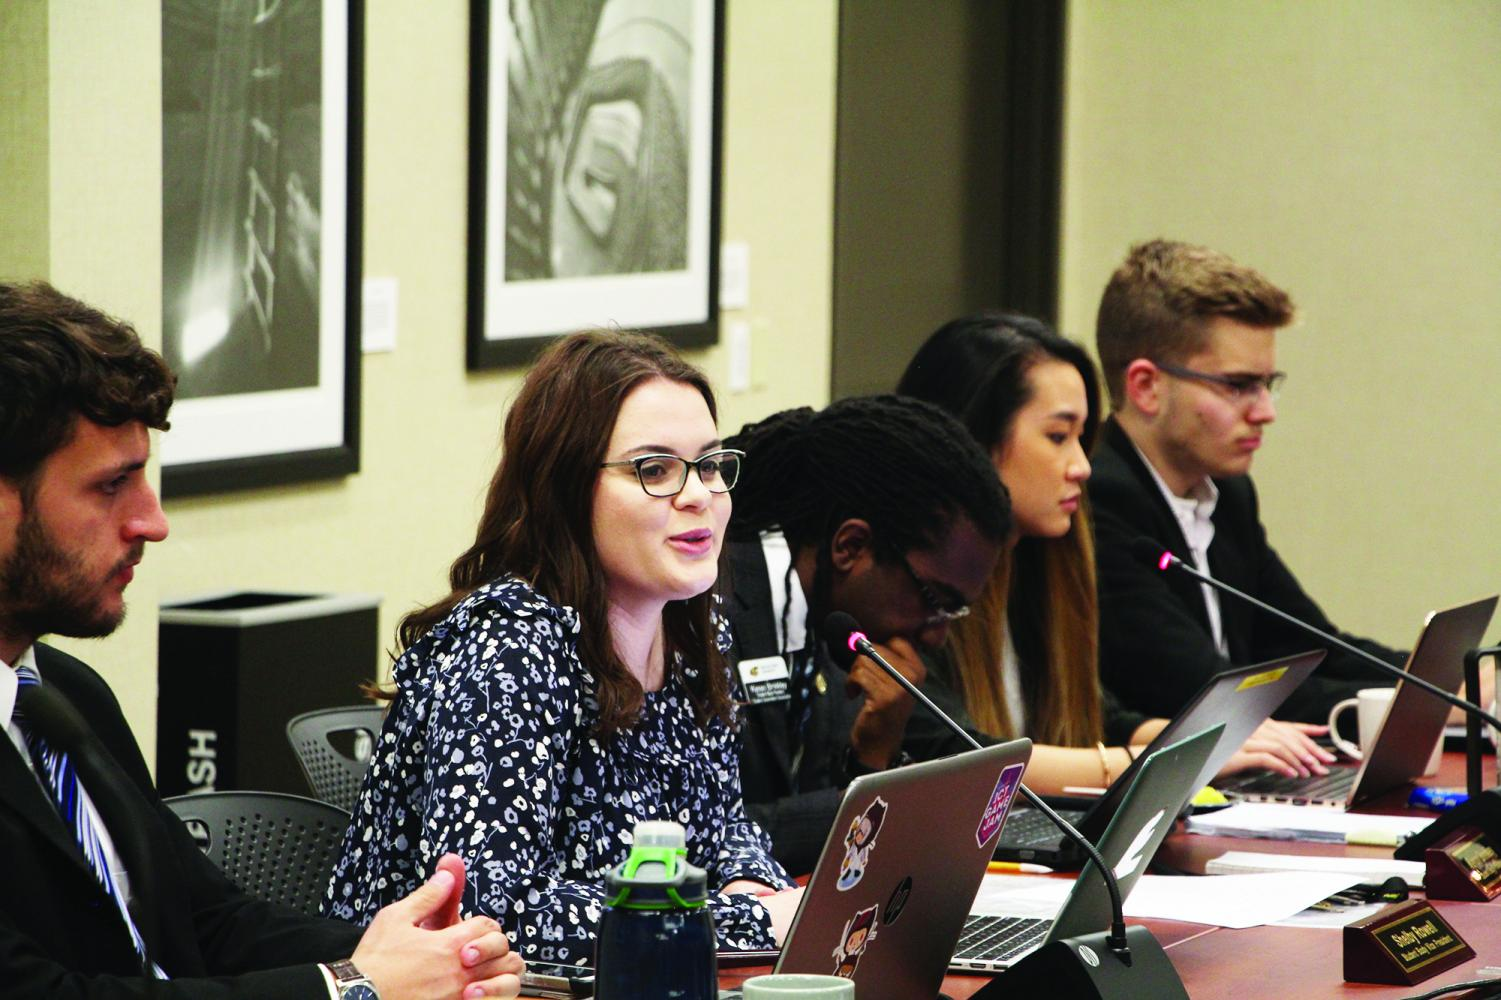 Student Body Vice President Shelby Rowell speaks during officer reports at Wednesday's Senate meeting.